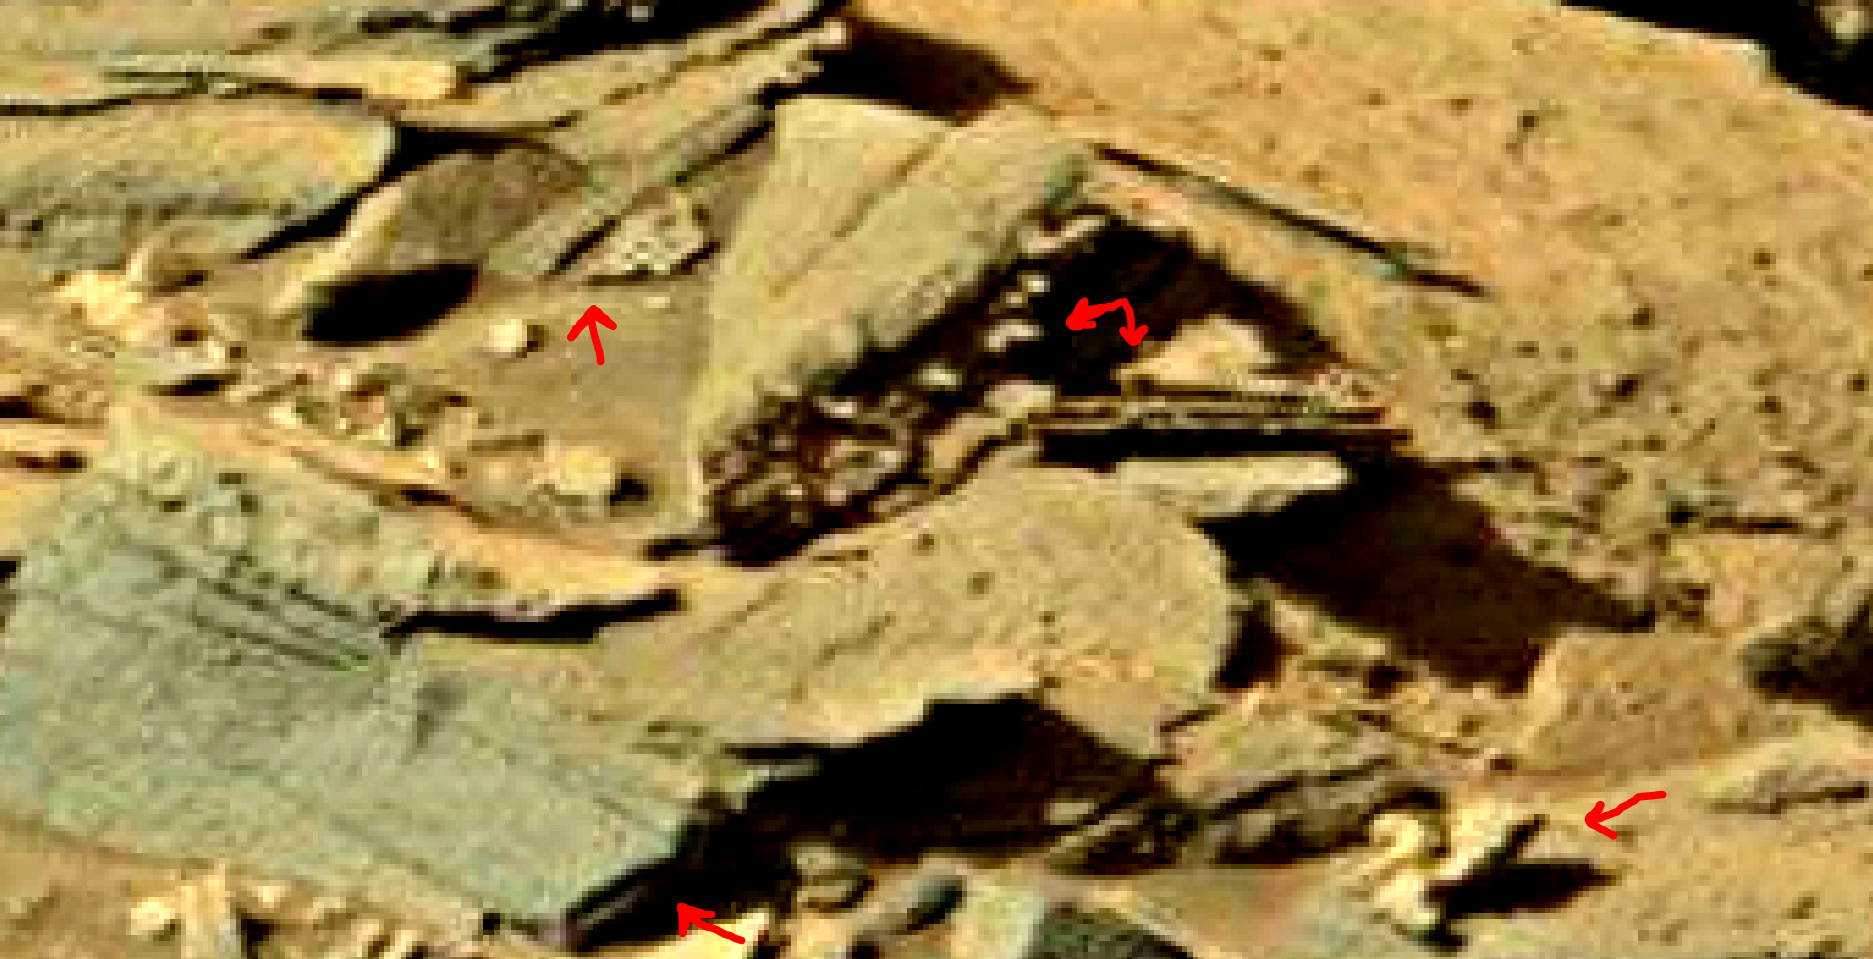 mars sol 1301 anomaly-artifacts 8a was life on mars